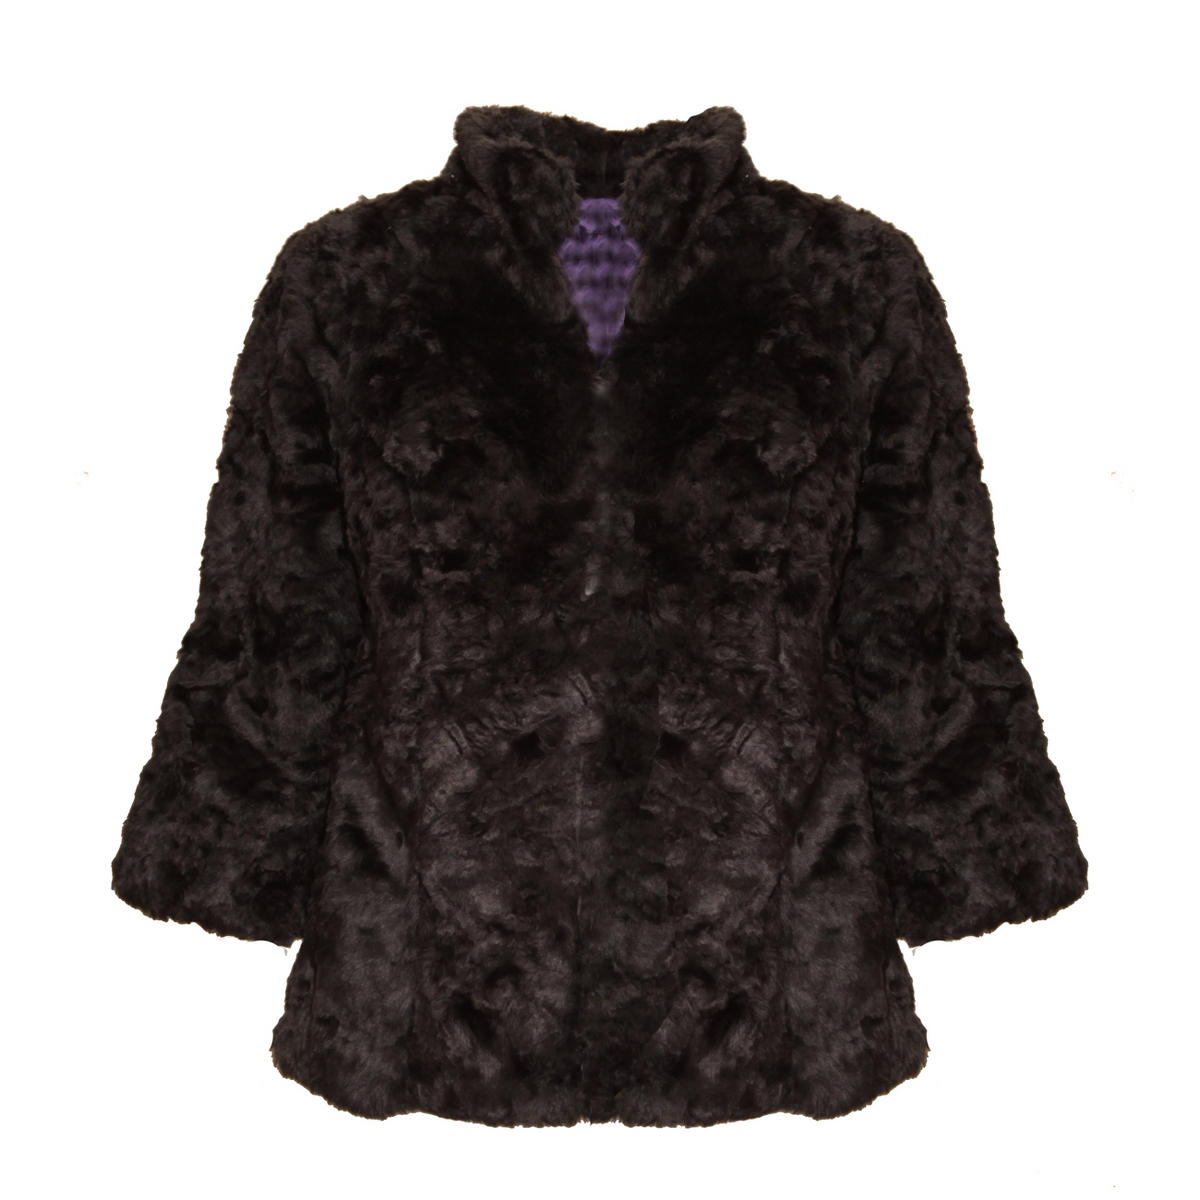 SIZE 12 ONLY Black Faux Fur Jacket Preview